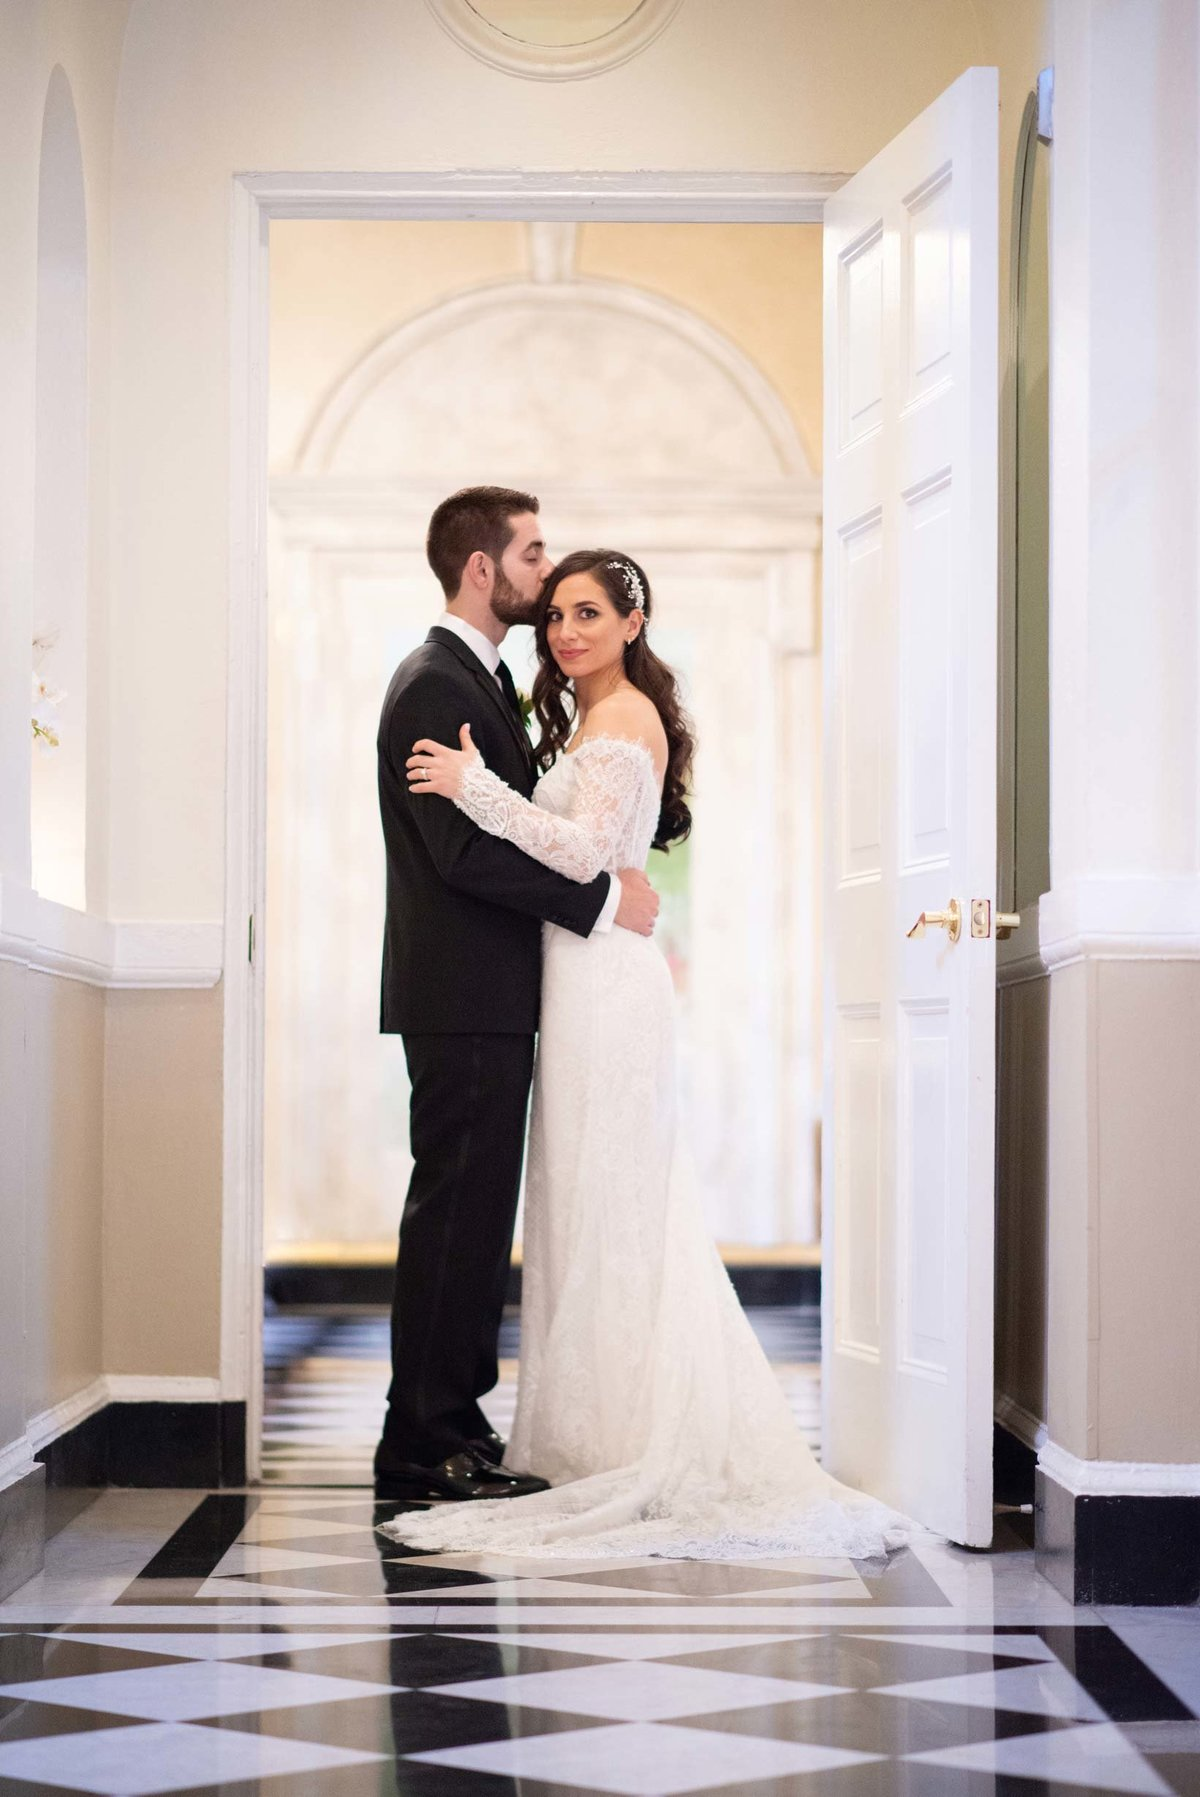 Indoor wedding photos from The Mansion at Oyster Bay